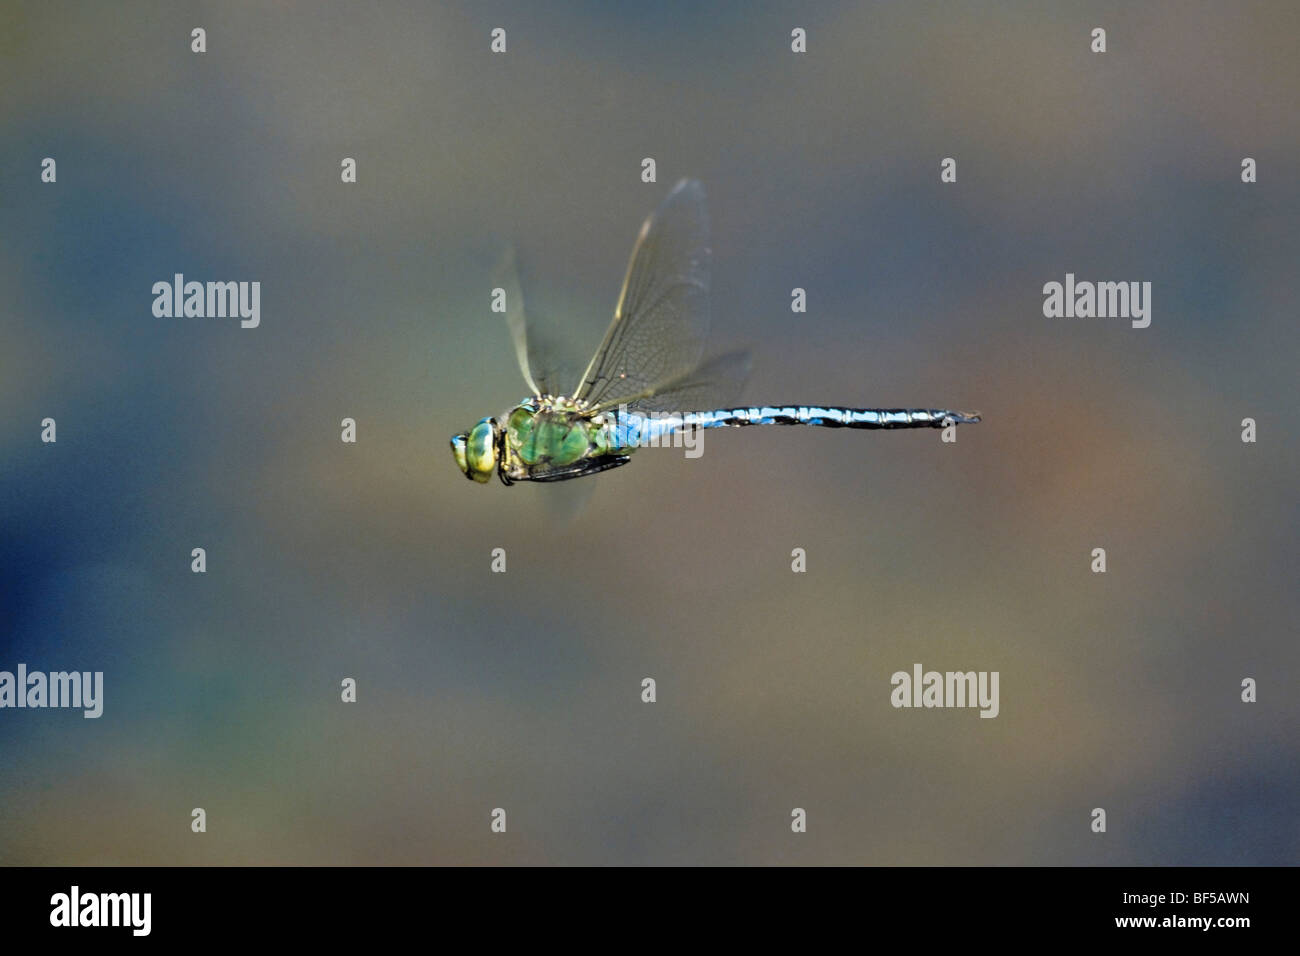 Dragonfly (Anax imperator) flying - Stock Image